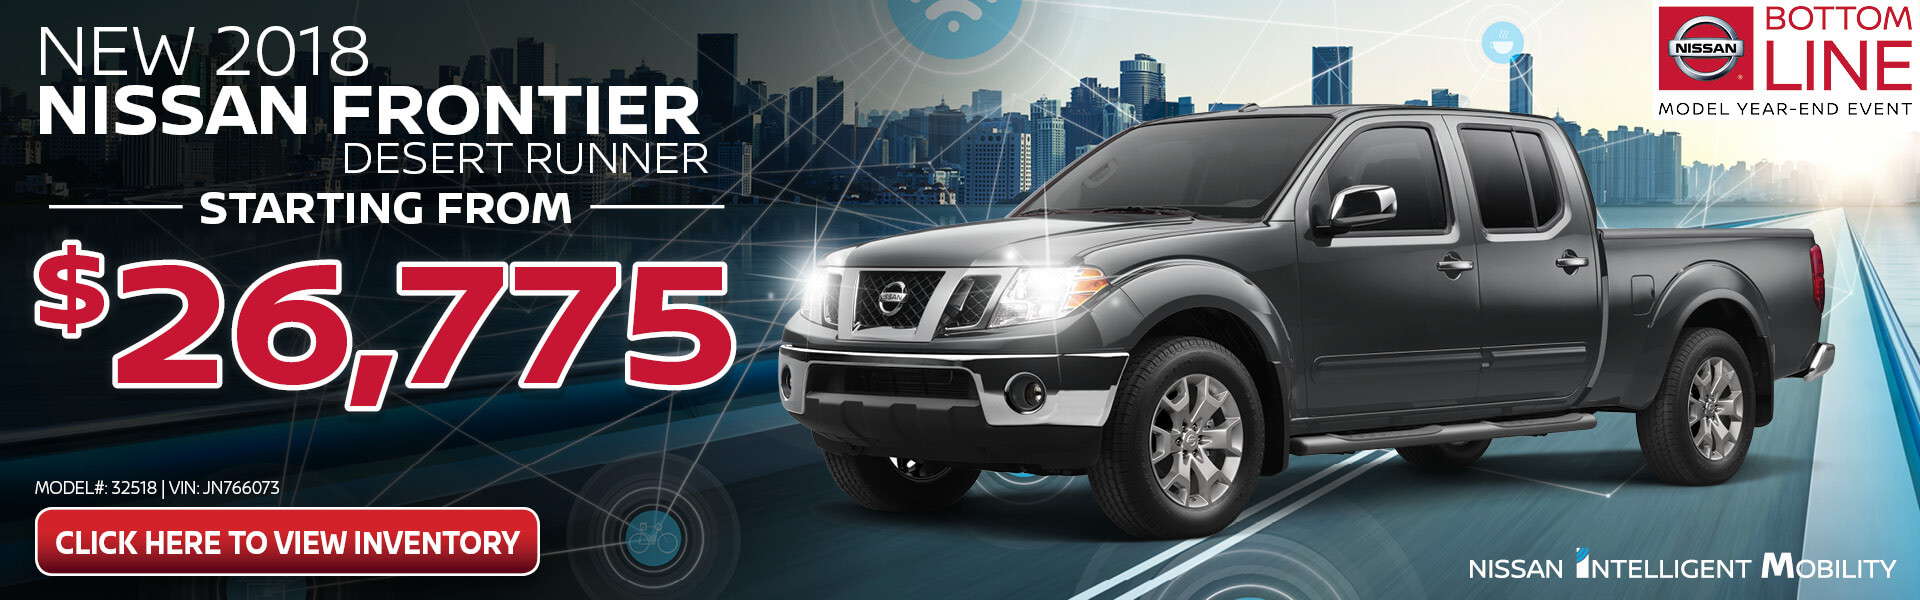 Nissan Frontier $26,775 Purchase